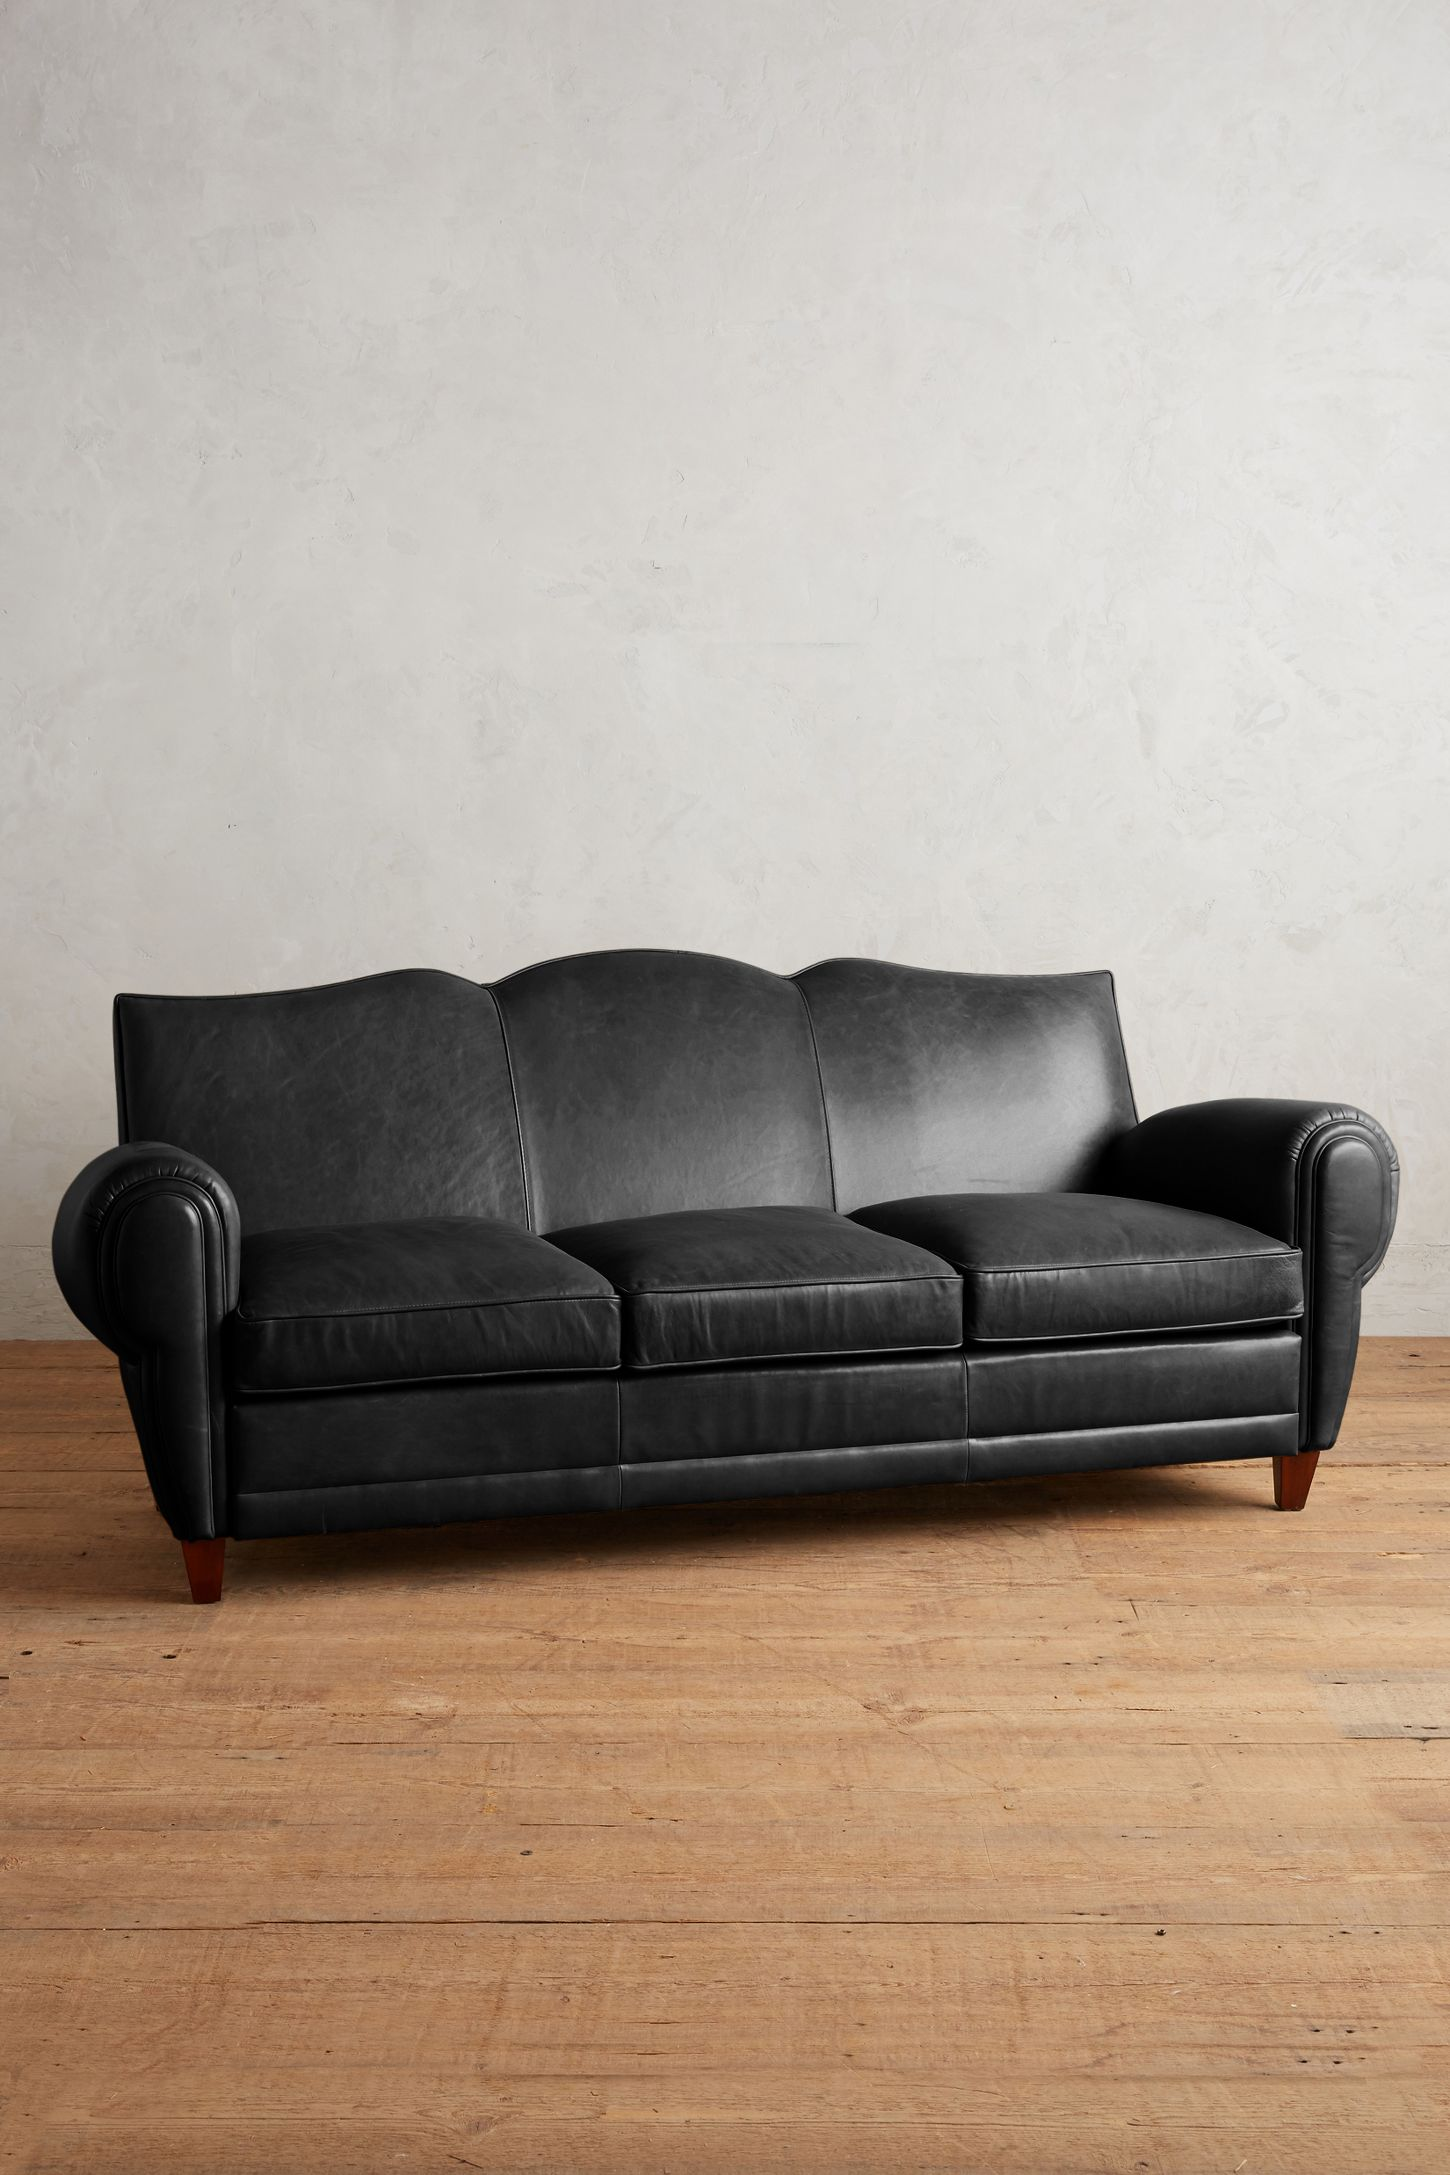 Black Shop Sofas Couches & Settees Anthropologie